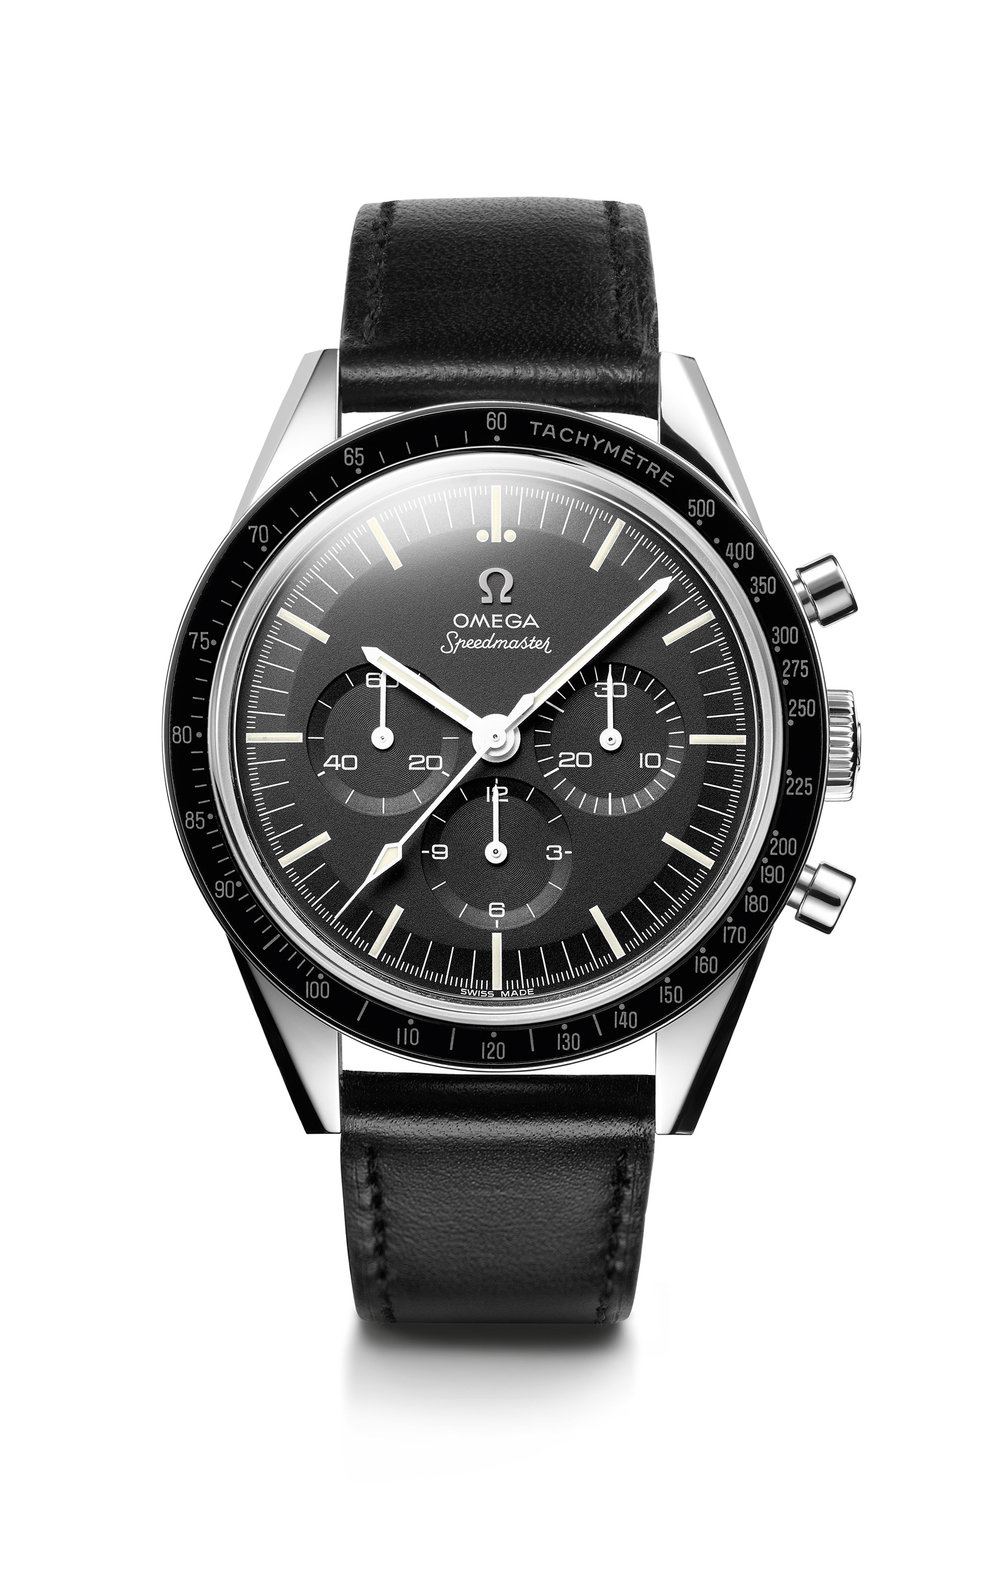 OMEGA Period-correct Speedmaster ST 105.003_low.jpg